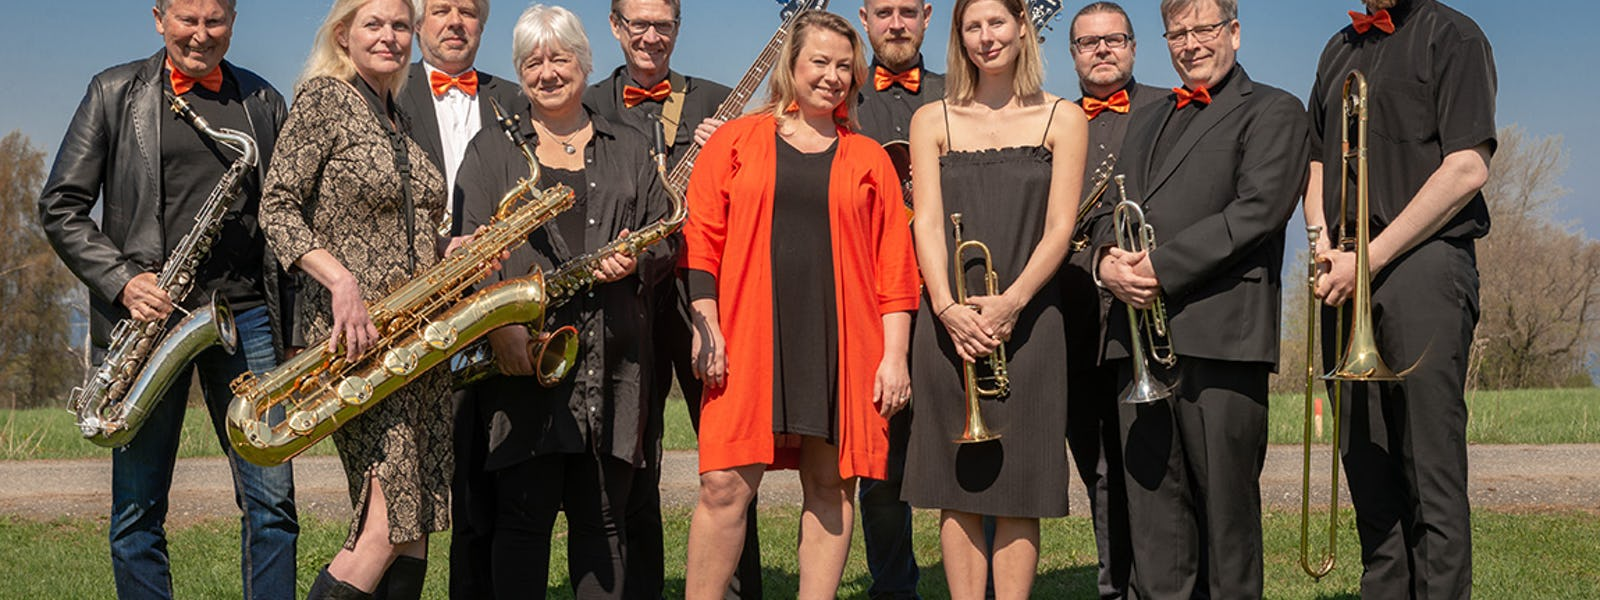 Bild - Österlia Big Band